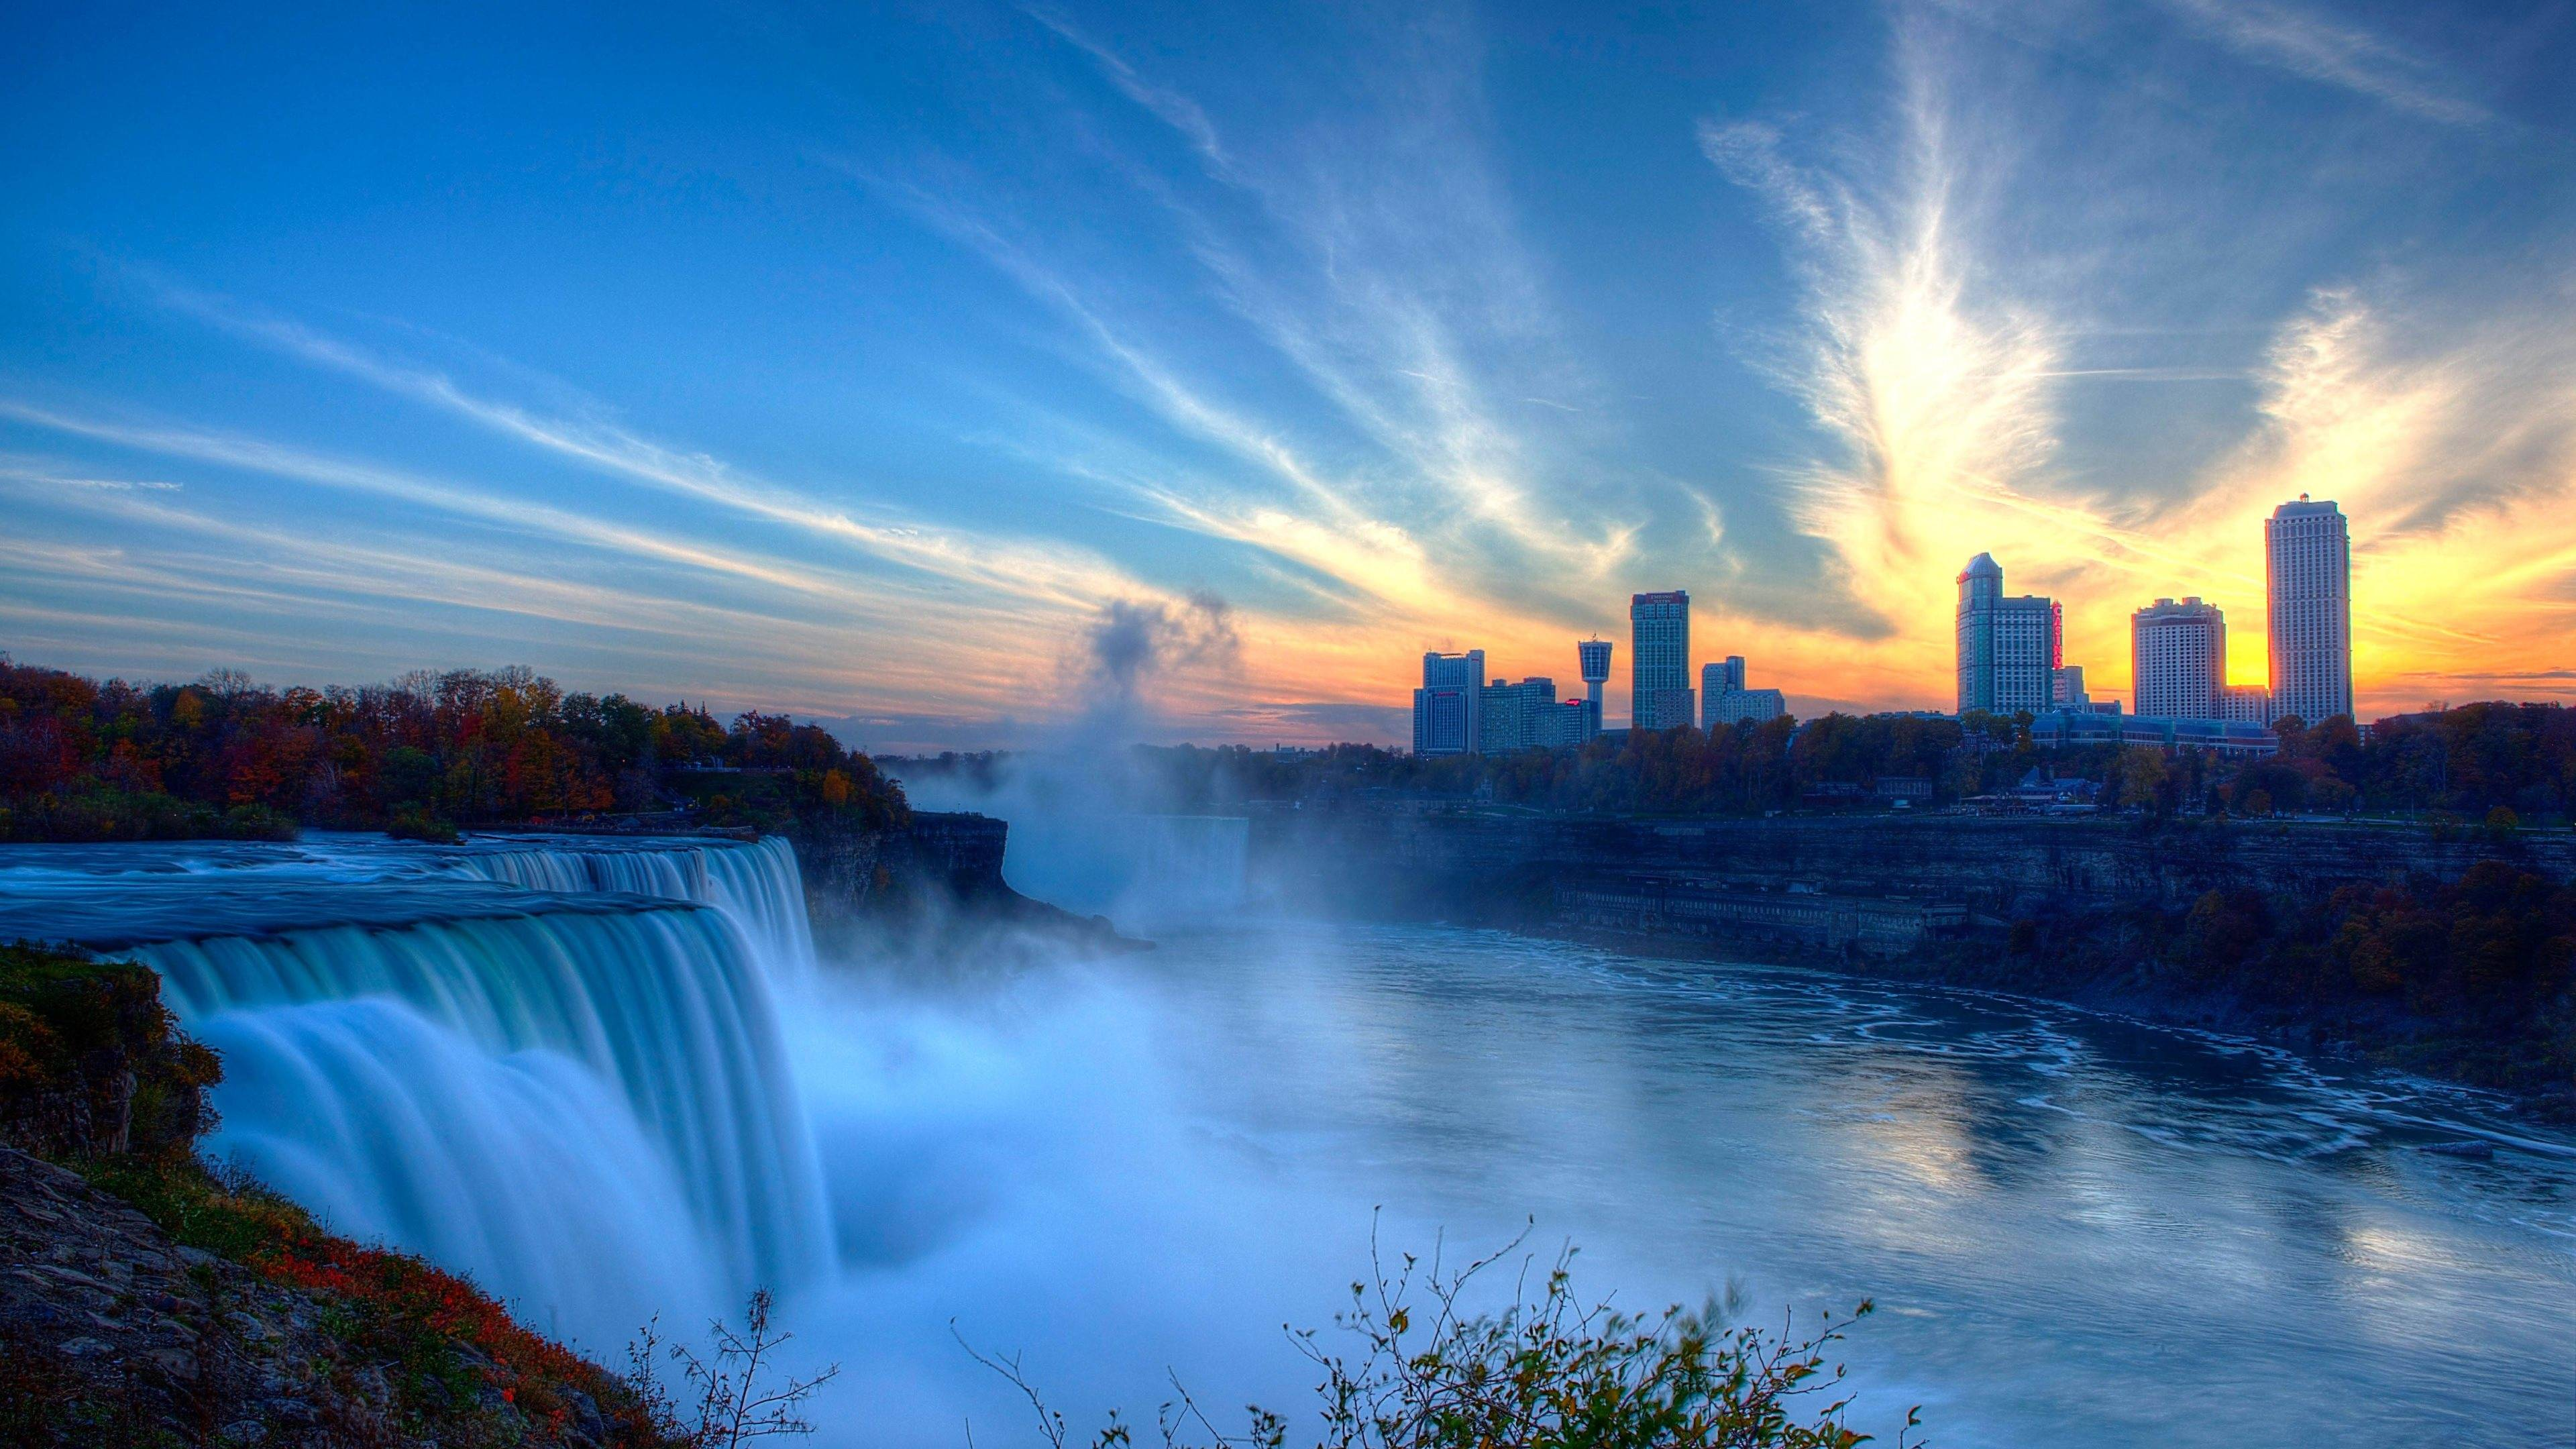 niagara falls wallpapers wallpaper cave